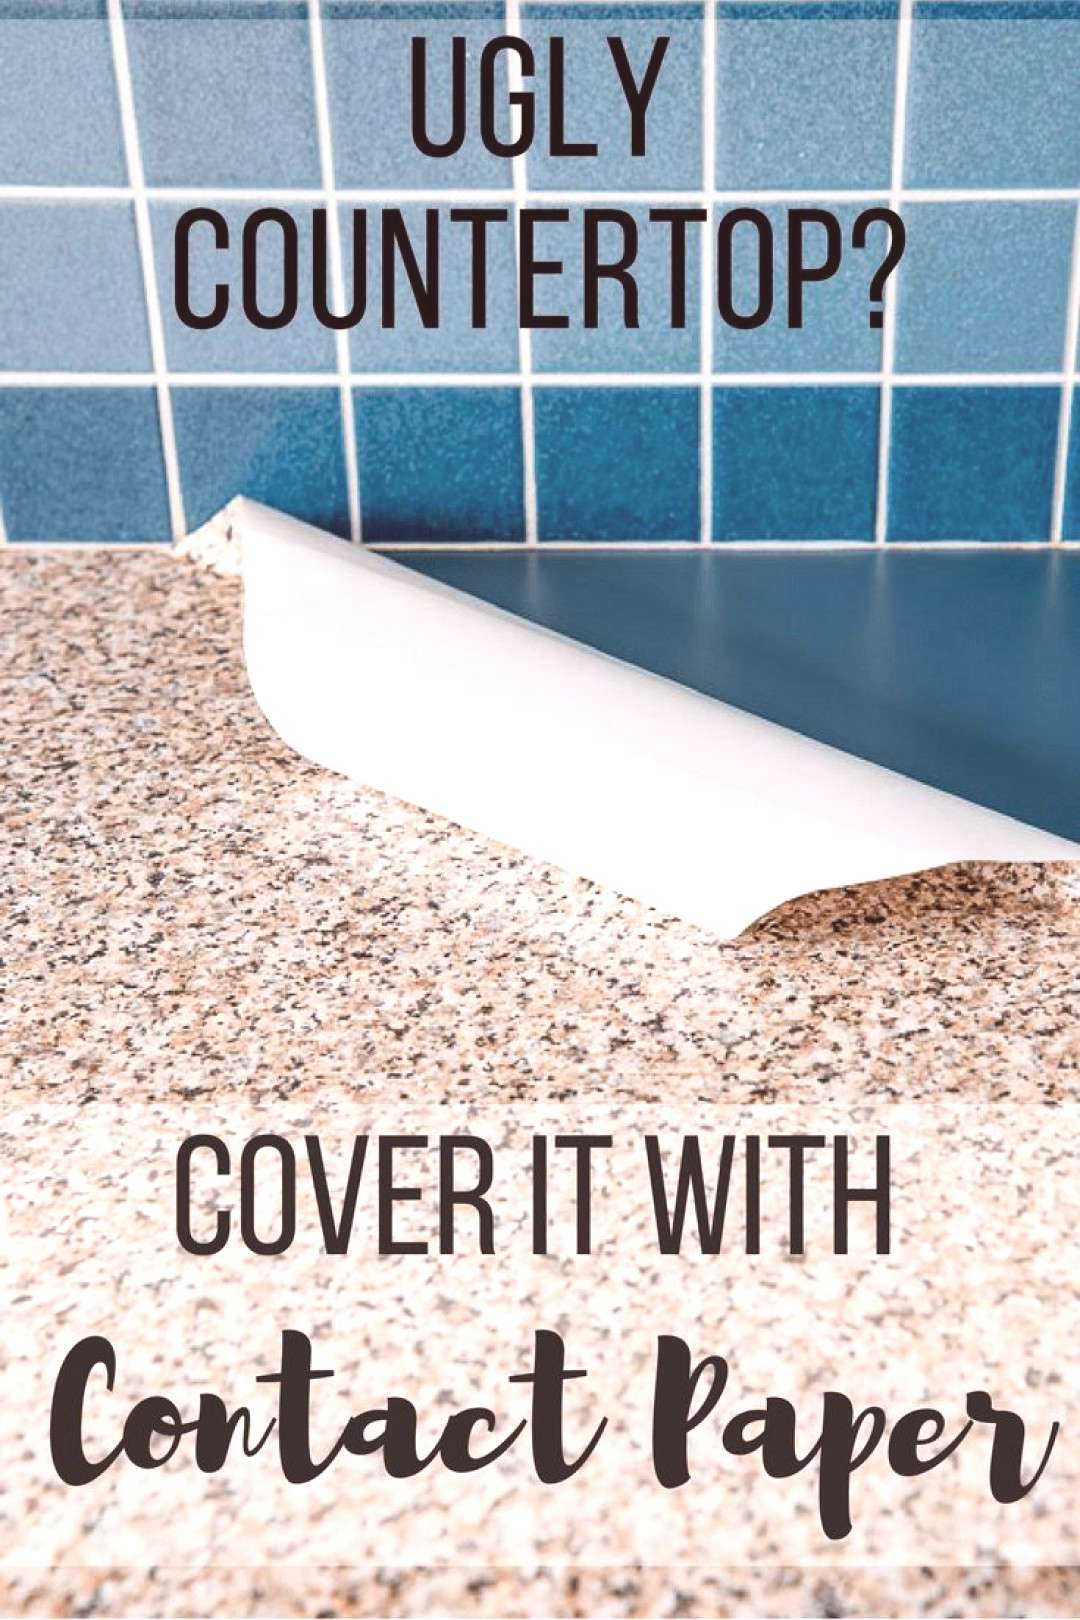 Two years ago, I applied granite contact paper to our ugly cobalt blue laminate counter tops. Peopl